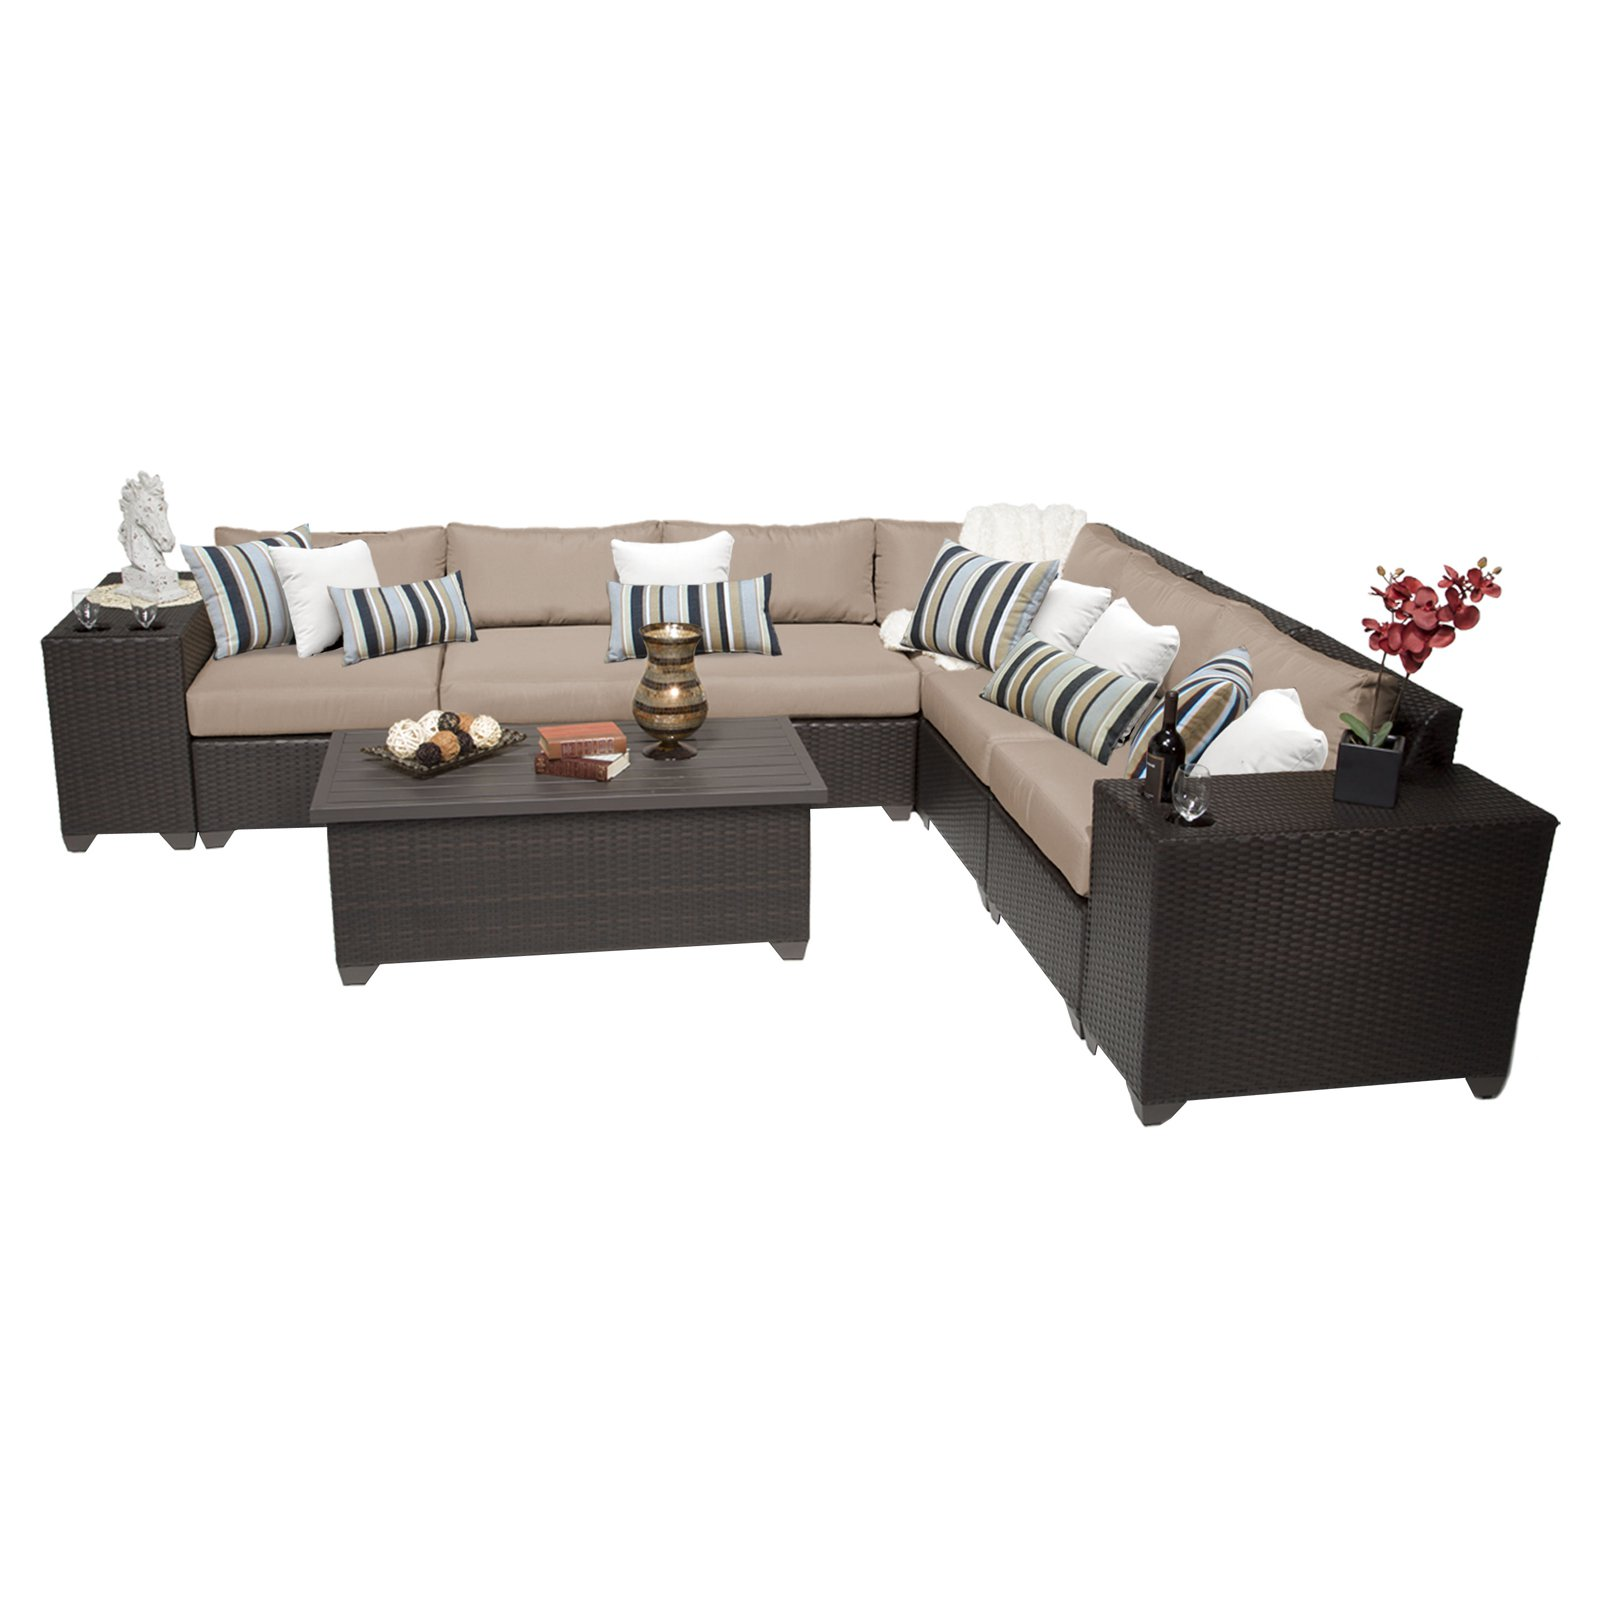 TK Classics Barbados Wicker 9 Piece Patio Conversation Set with 2 Sets of Cushion Covers